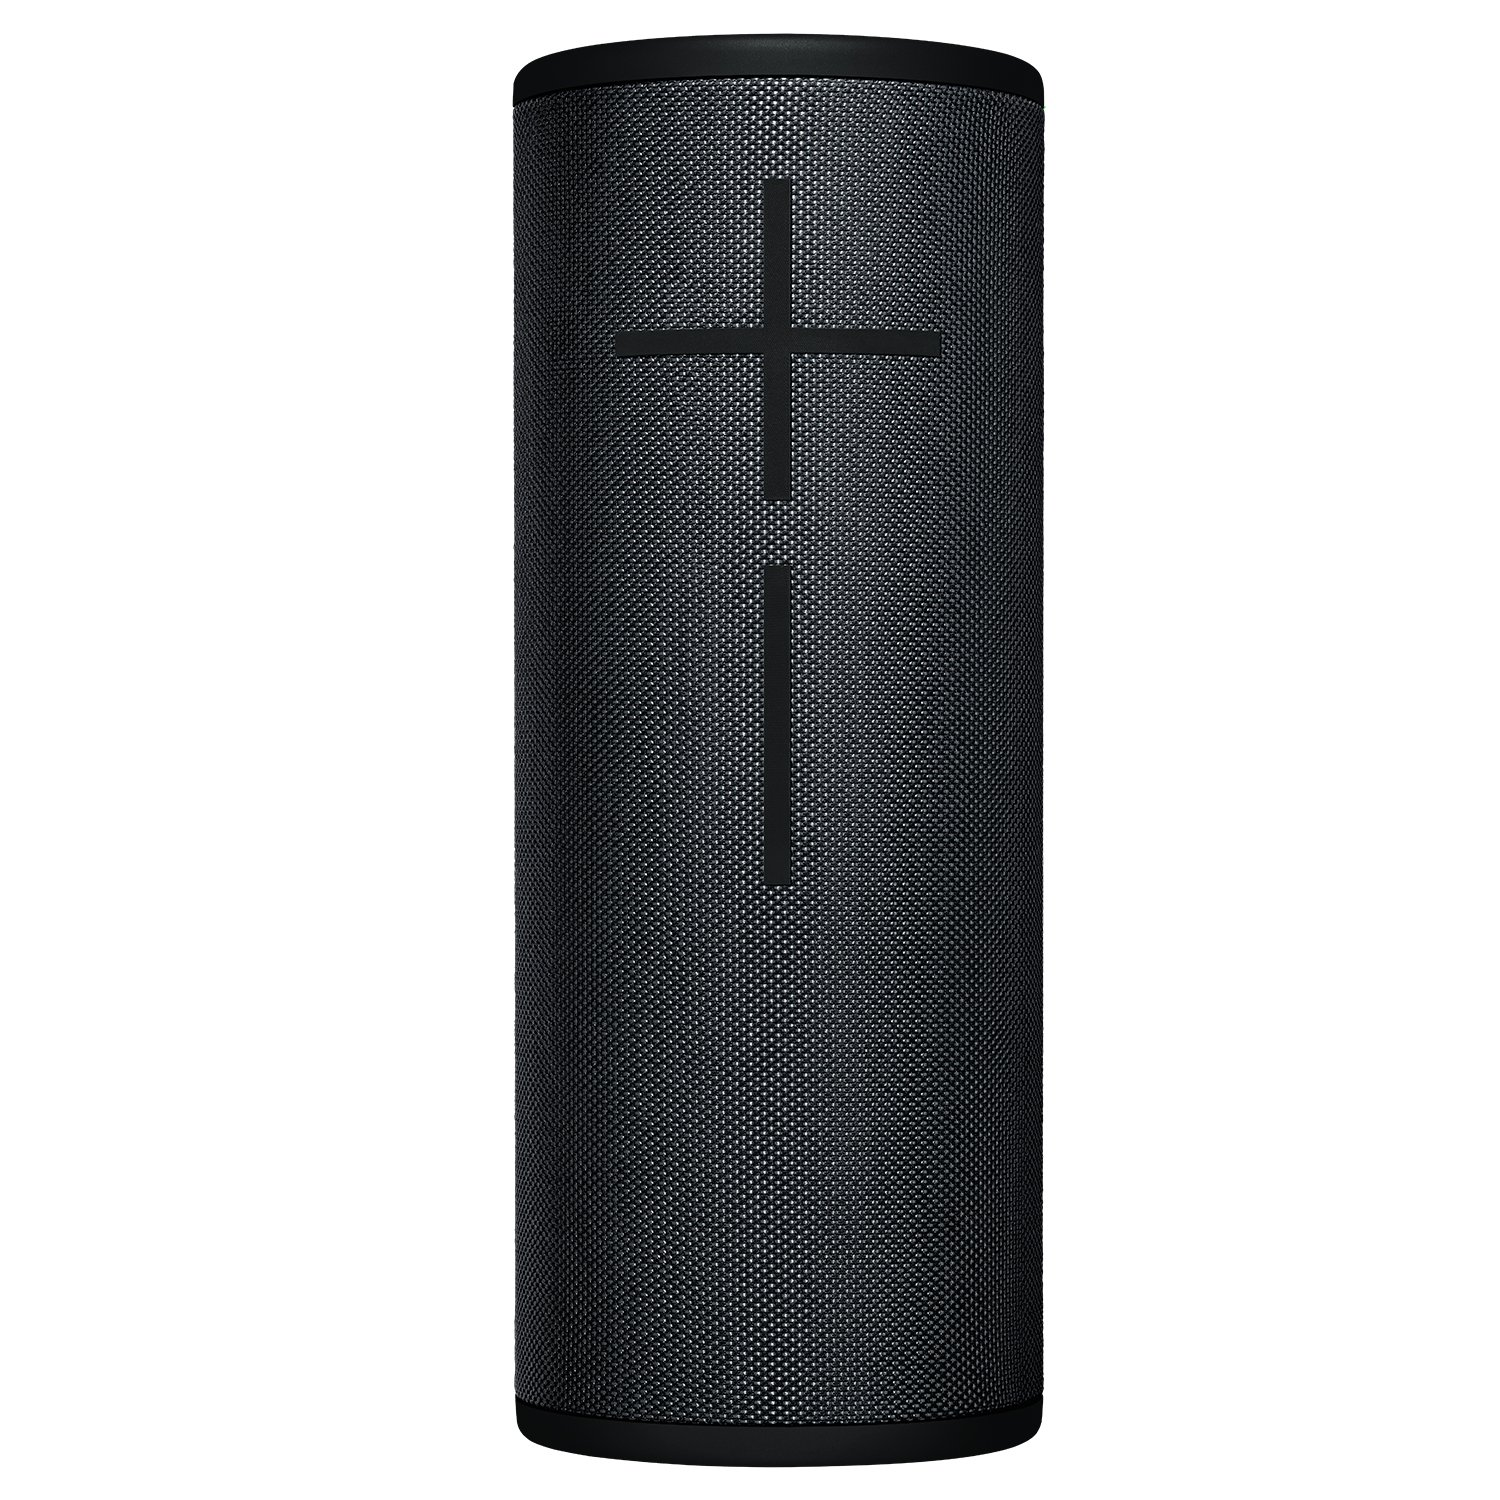 Ultimate Ears MEGABOOM 3 Portable Waterproof Bluetooth Speaker - Night Black by Ultimate Ears